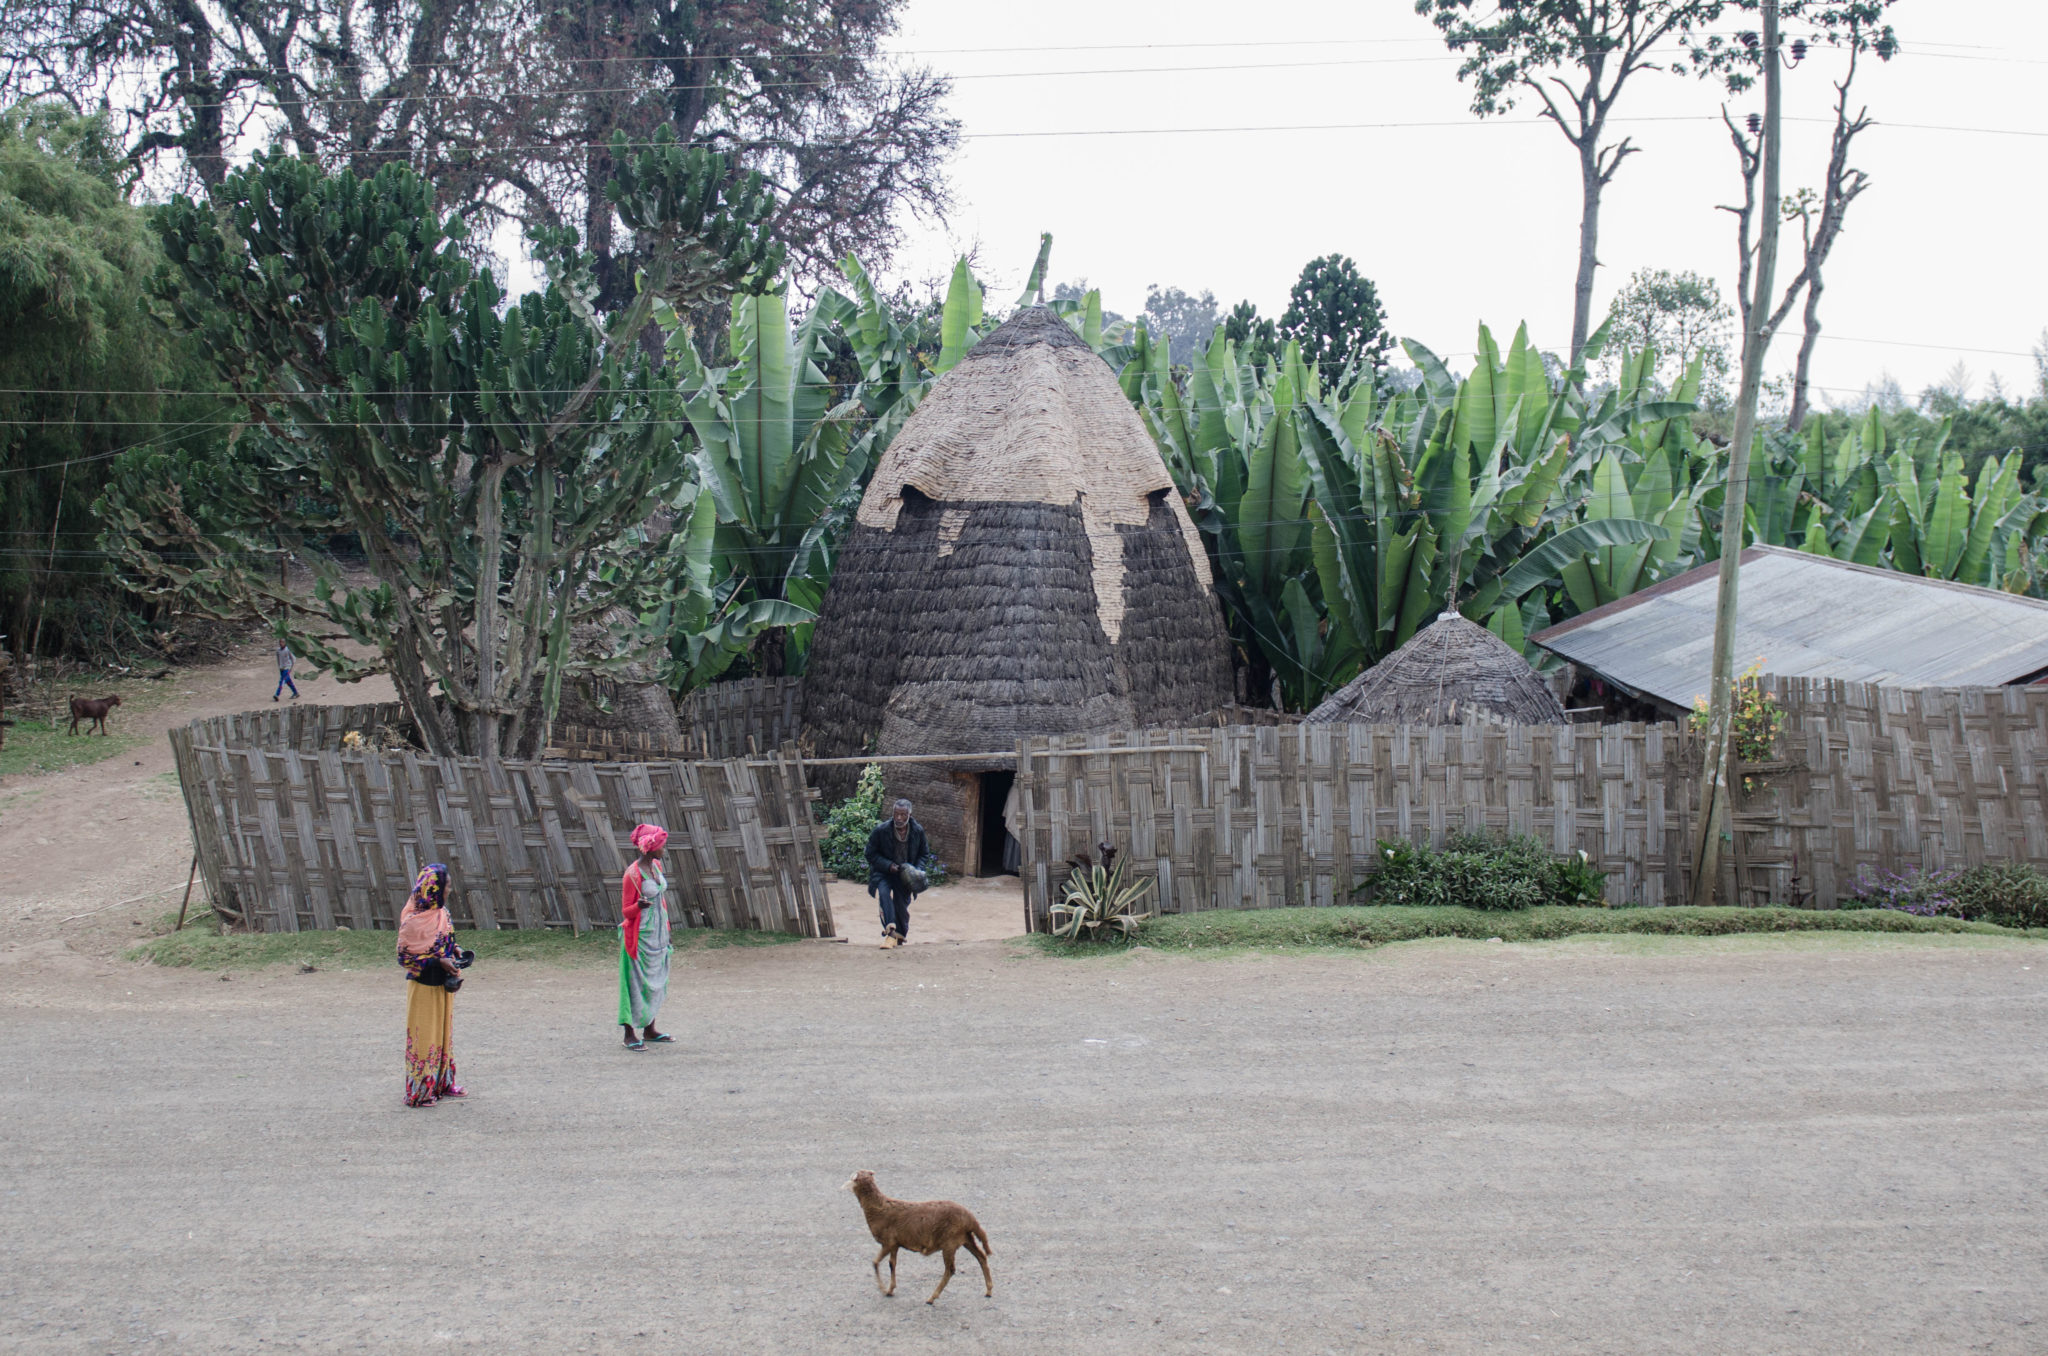 Dorze People in Ethiopia: Visiting the Dorze village is a must in Southern Ethiopia